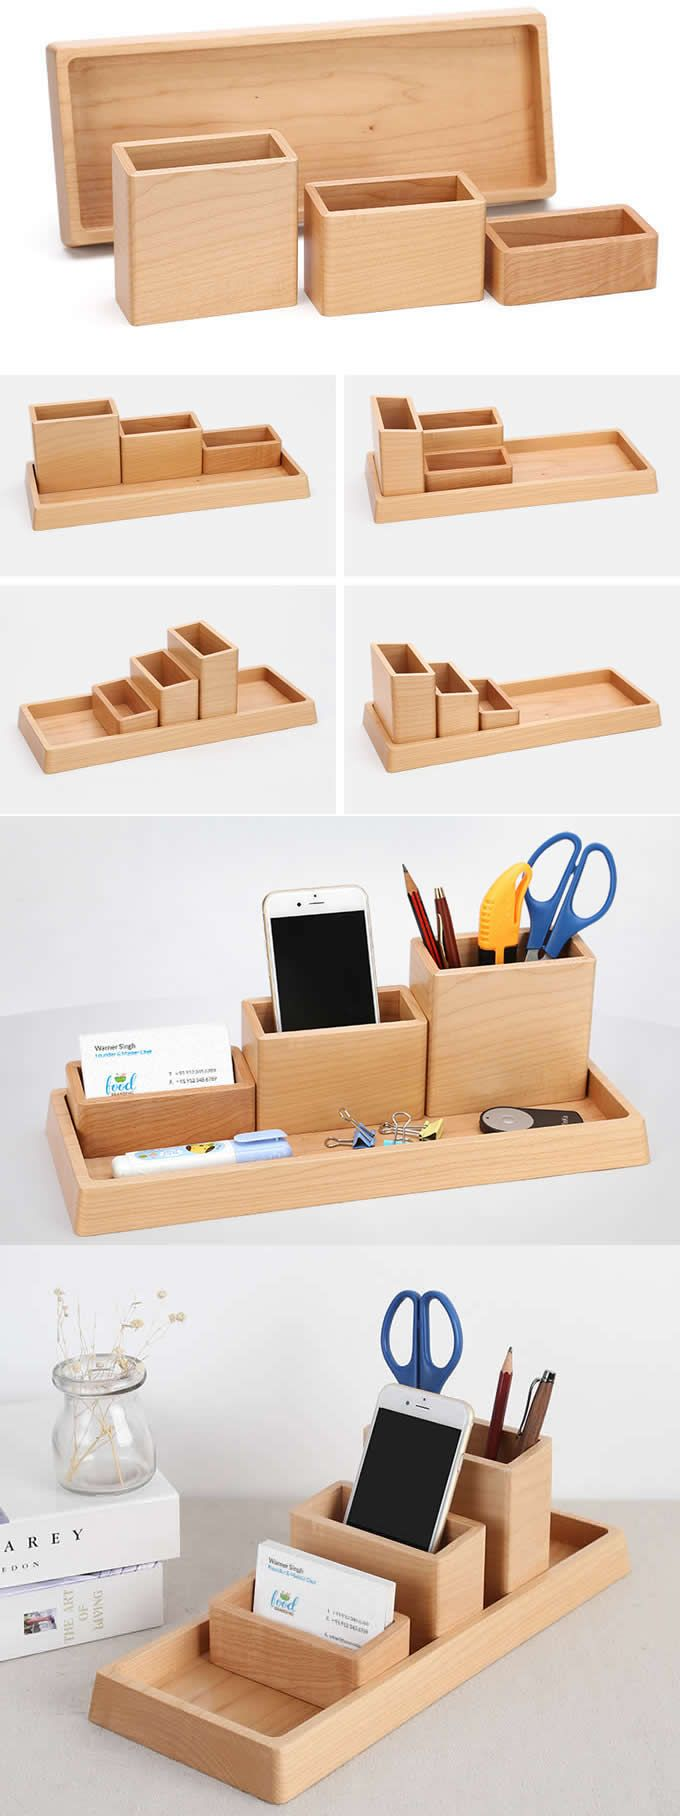 4 Compartments Wooden Office Desk Organizer Collection Smart Phone Dock Holder Pen Pencils Hol Wooden Desk Organizer Desk Organization Diy Wooden Office Desk